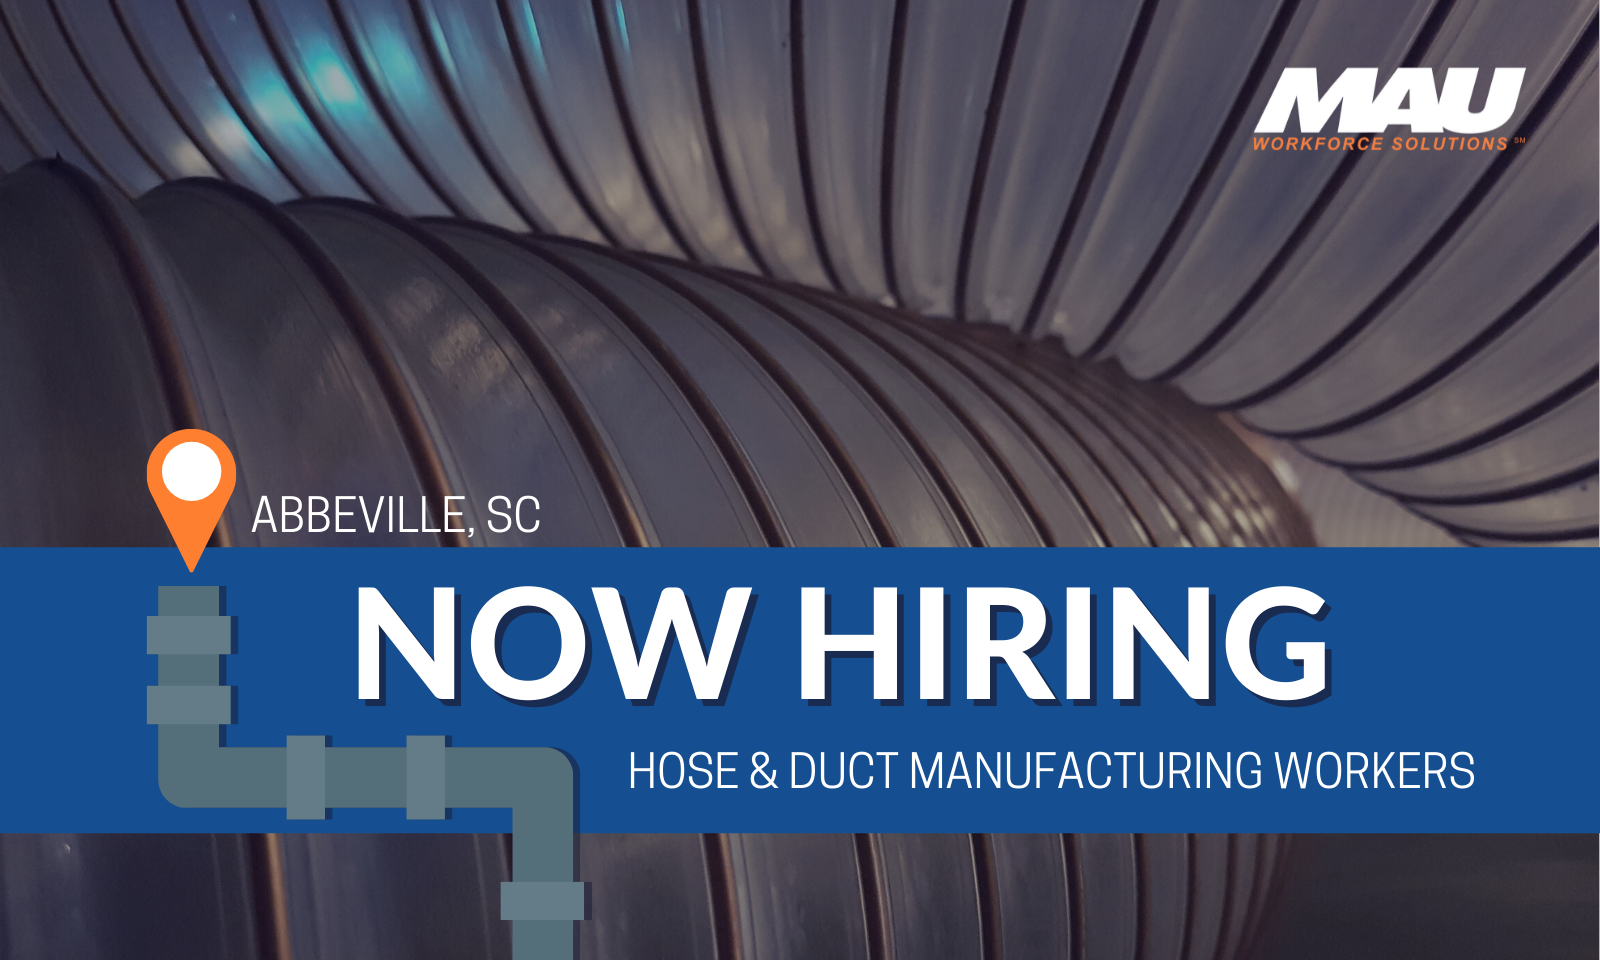 MAU at Flexible Technologies is Now Hiring [Abbeville, SC]